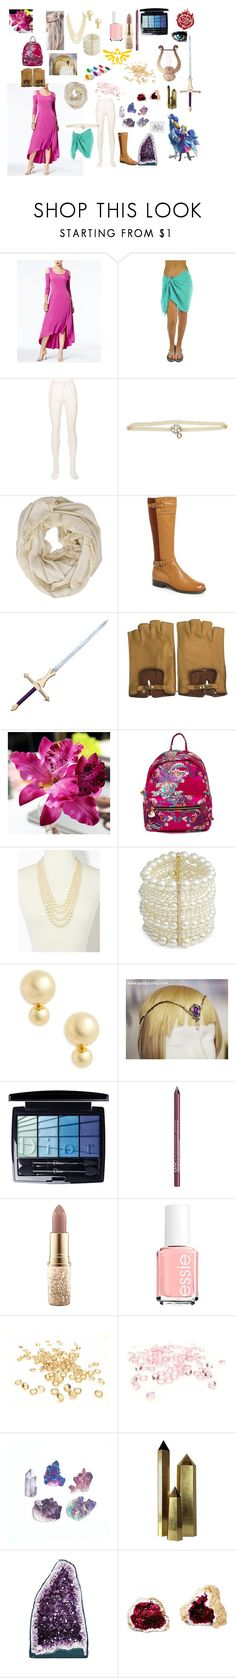 """""""Orchid Goldcrest: Beacon academy"""" by okamikun ❤ liked on Polyvore featuring S.W.O.R.D., NY Collection, Philosophy di Lorenzo Serafini, Class Roberto Cavalli, Janavi, Aetrex, Hermès, Betsey Johnson, Design Lab and Kate Spade"""